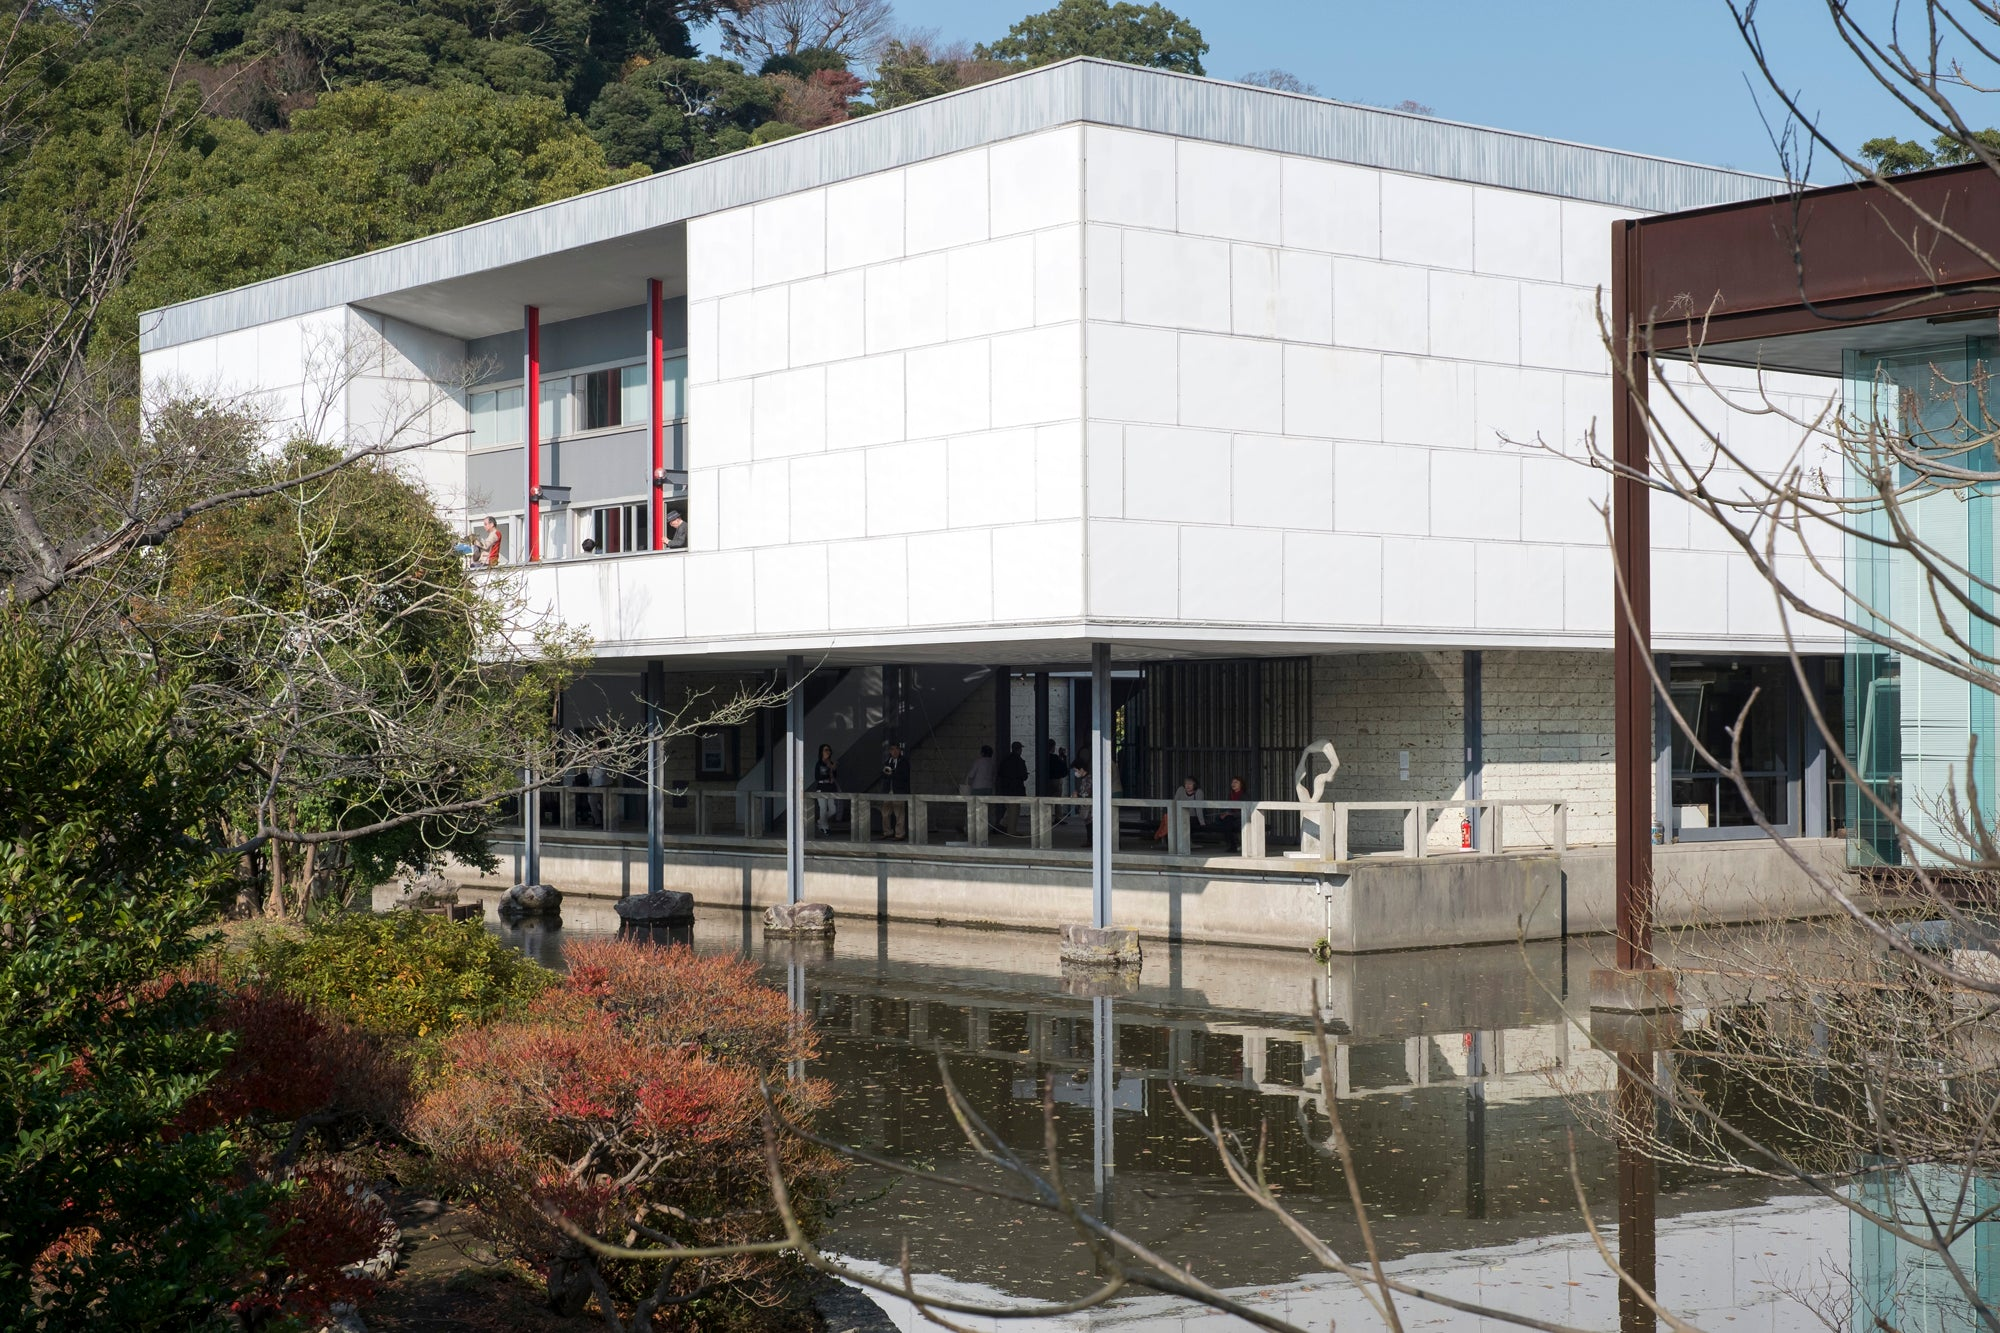 The Museum of Modern Art Kamakura - A Report by Aya Sekine